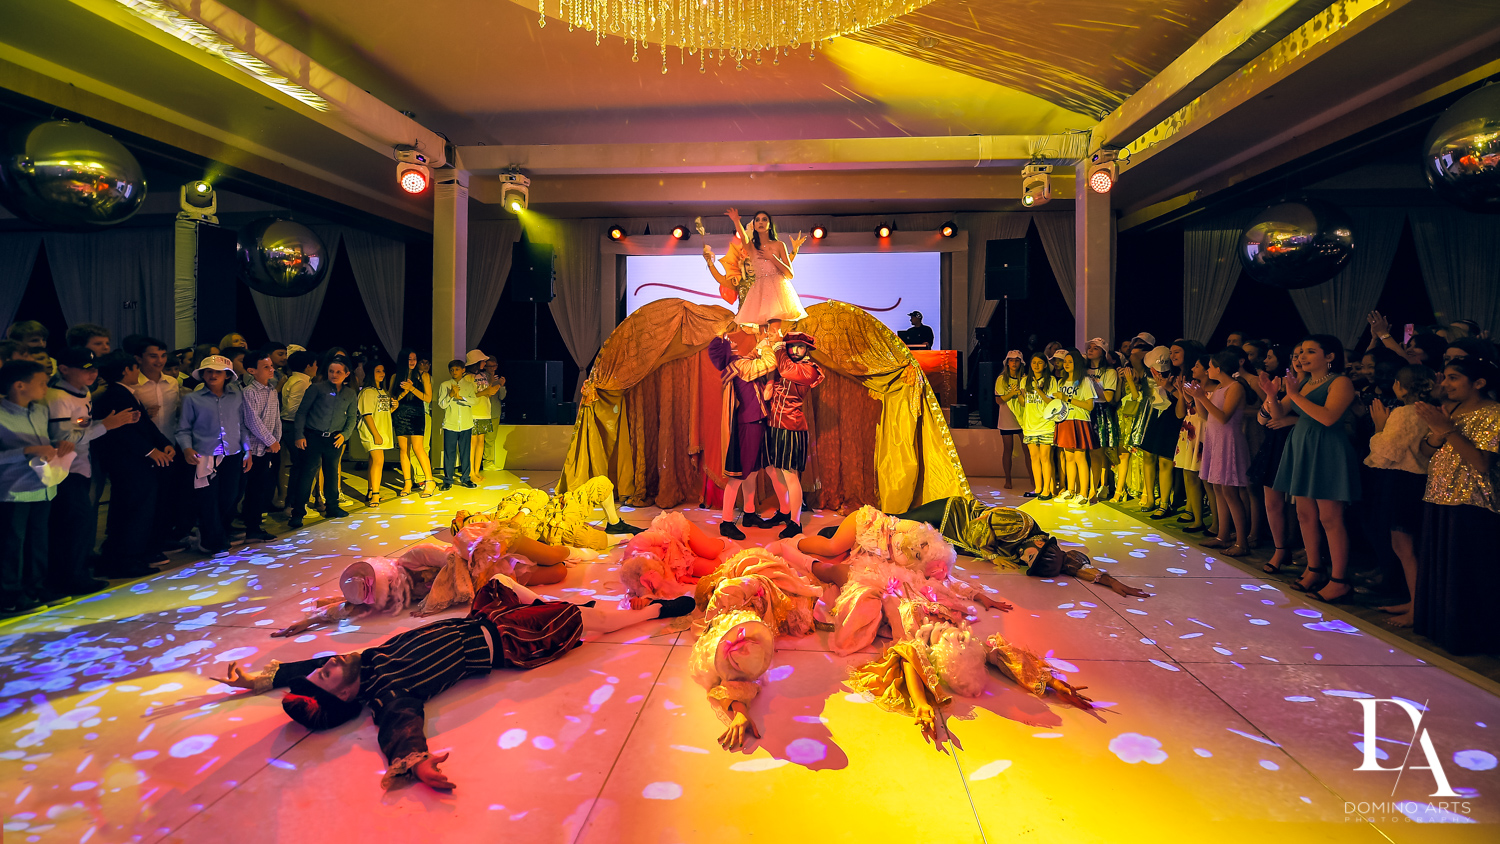 theatrical performance at Masquerade Ball Bat Mitzvah at Ritz Carlton Fort Lauderdale by Domino Arts Photography